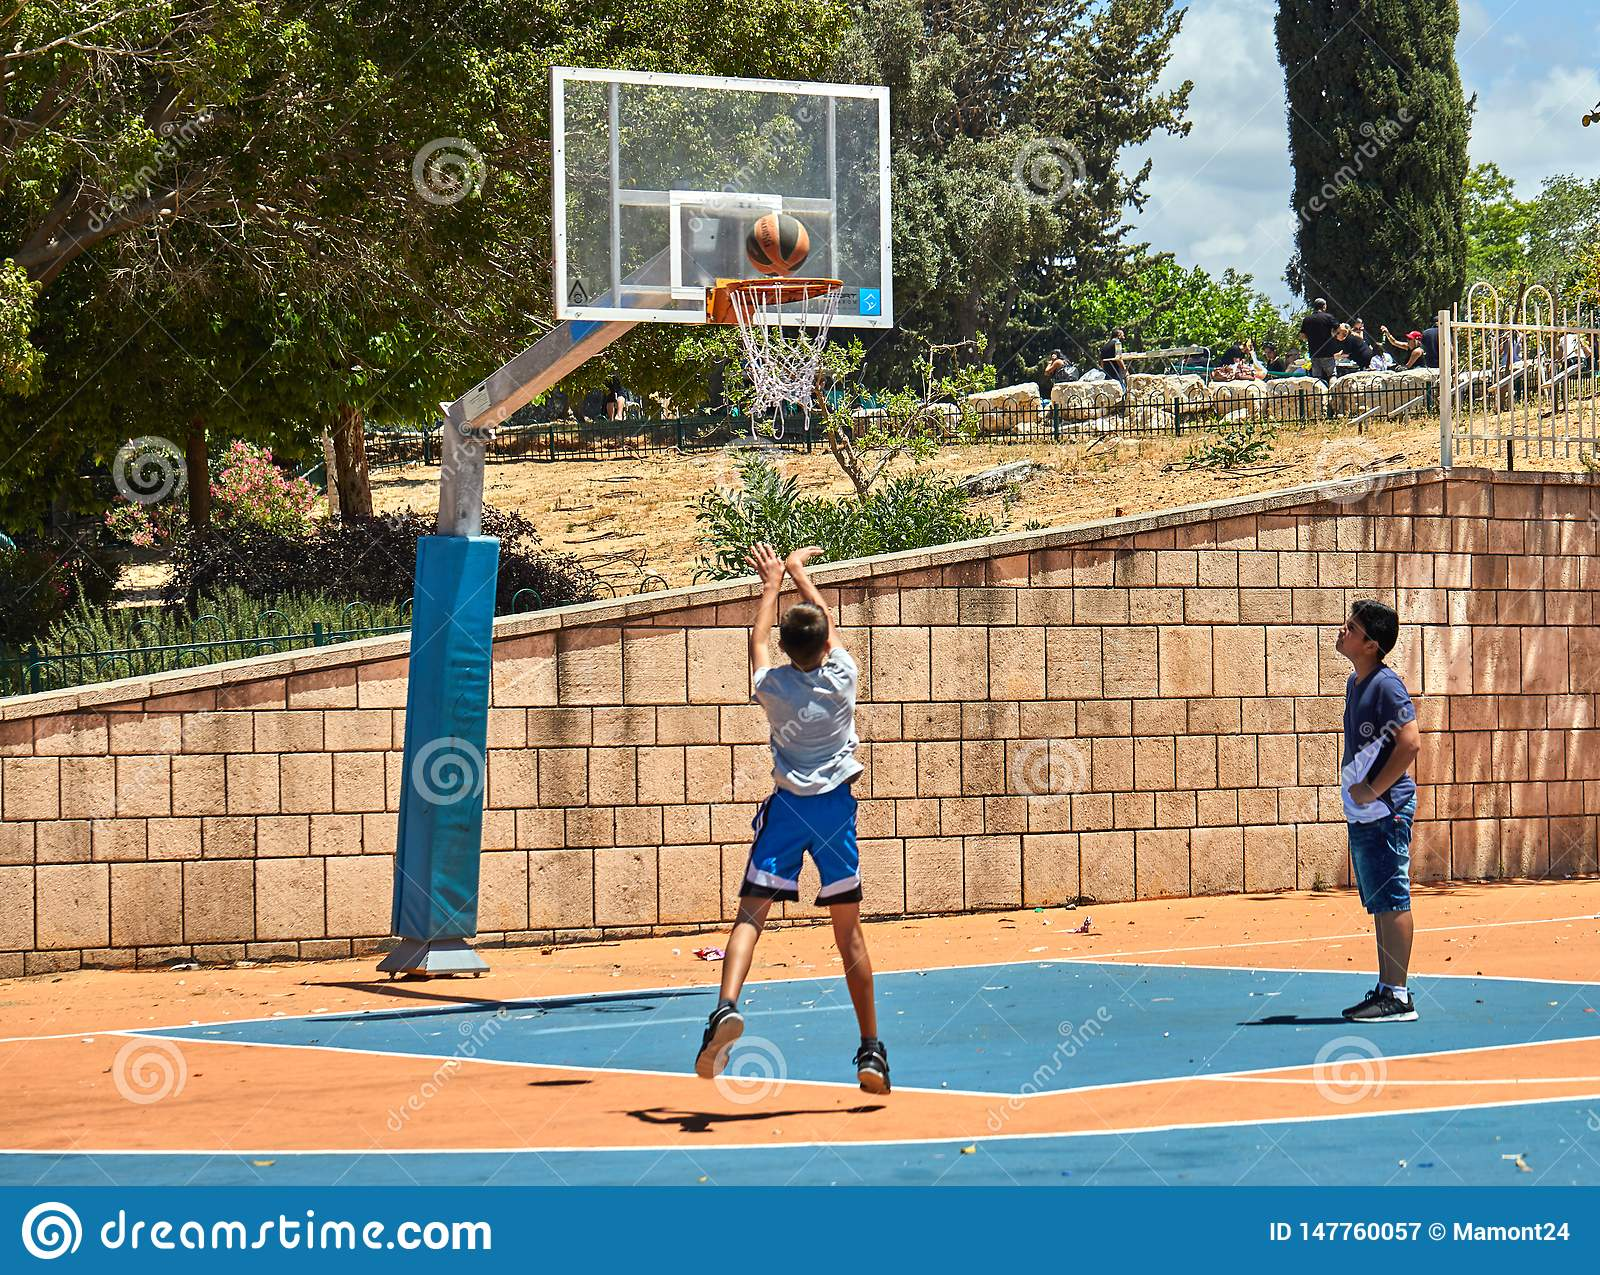 Teenagers playing basketball in a city park